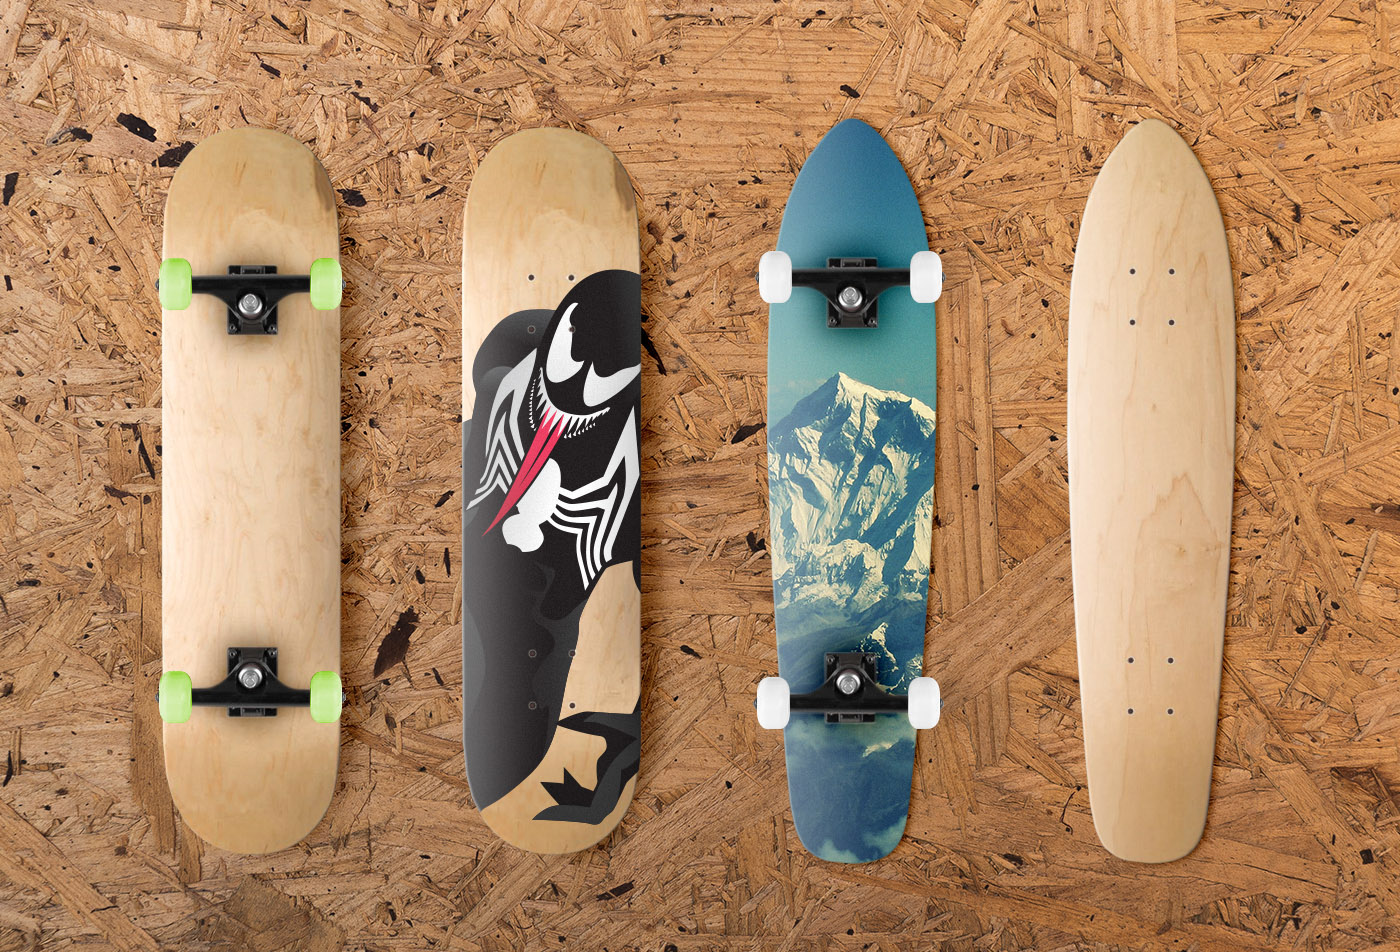 skateboard mockup free download on behance